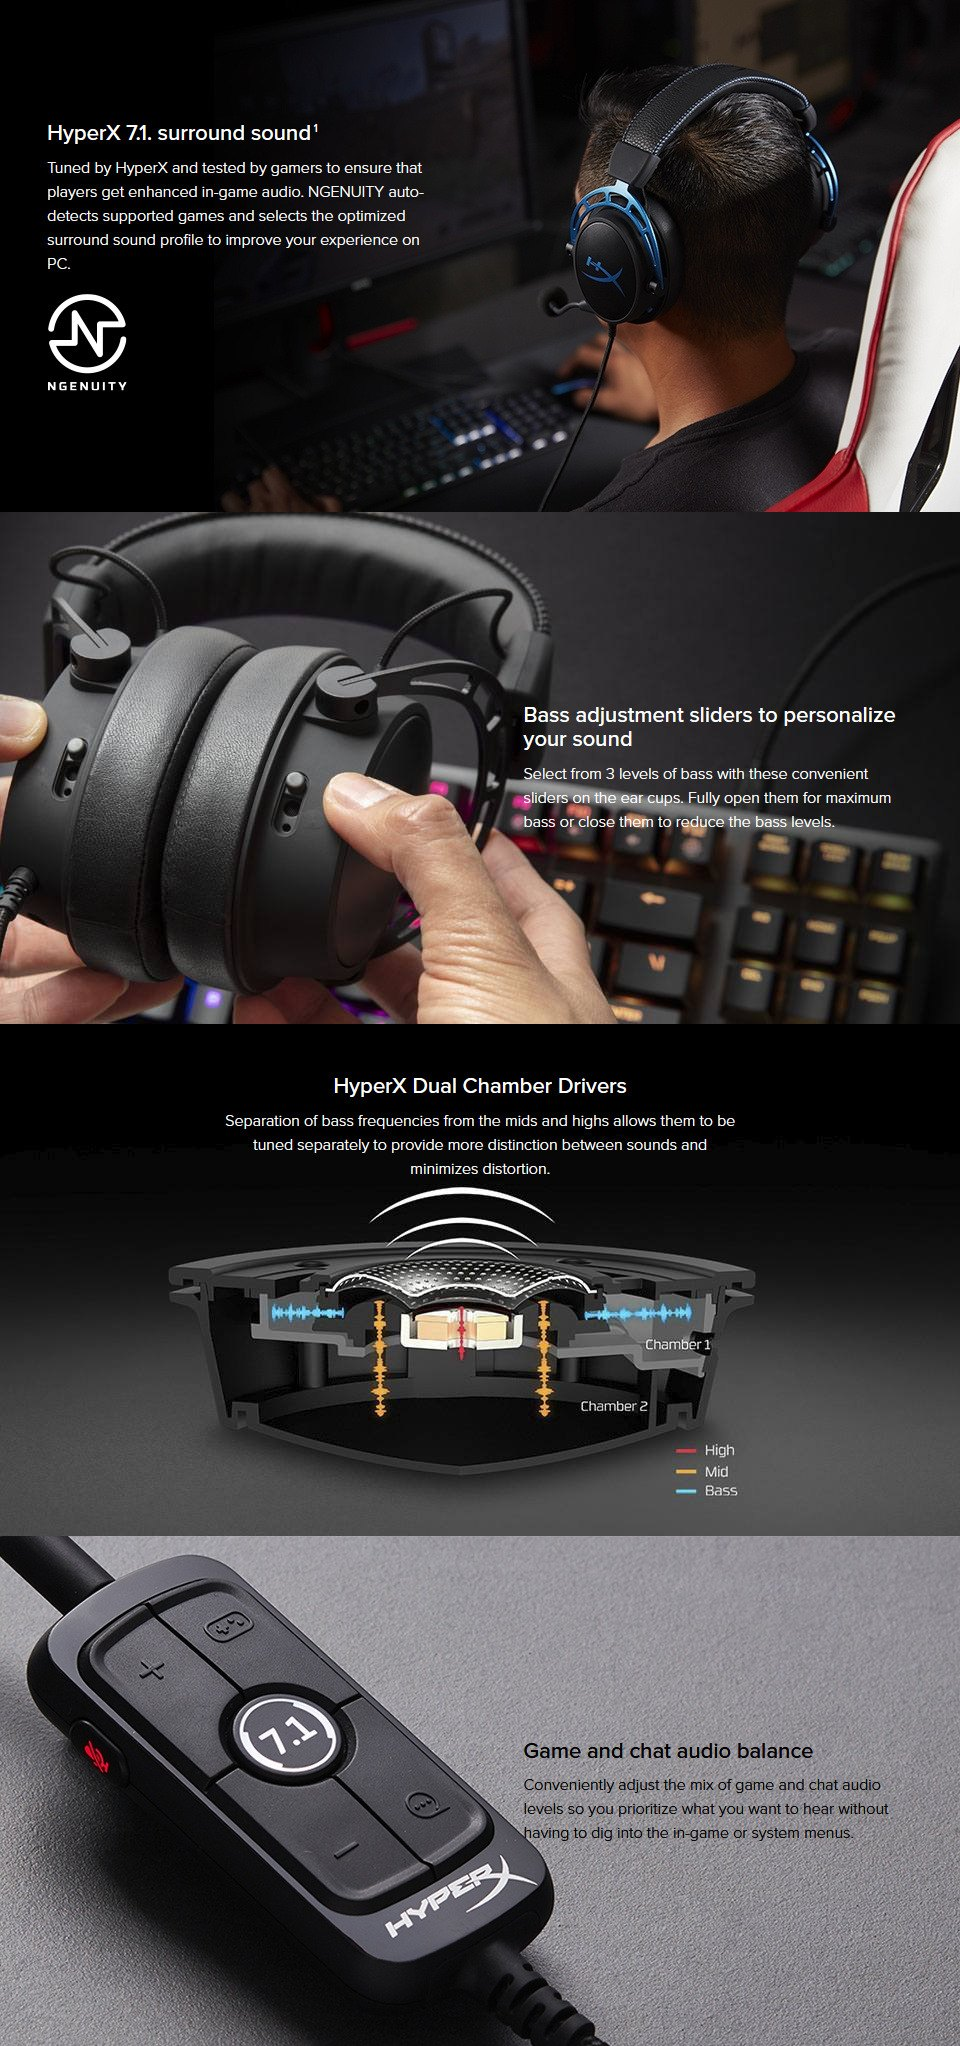 HyperX Alpha S Gaming Headset Black features